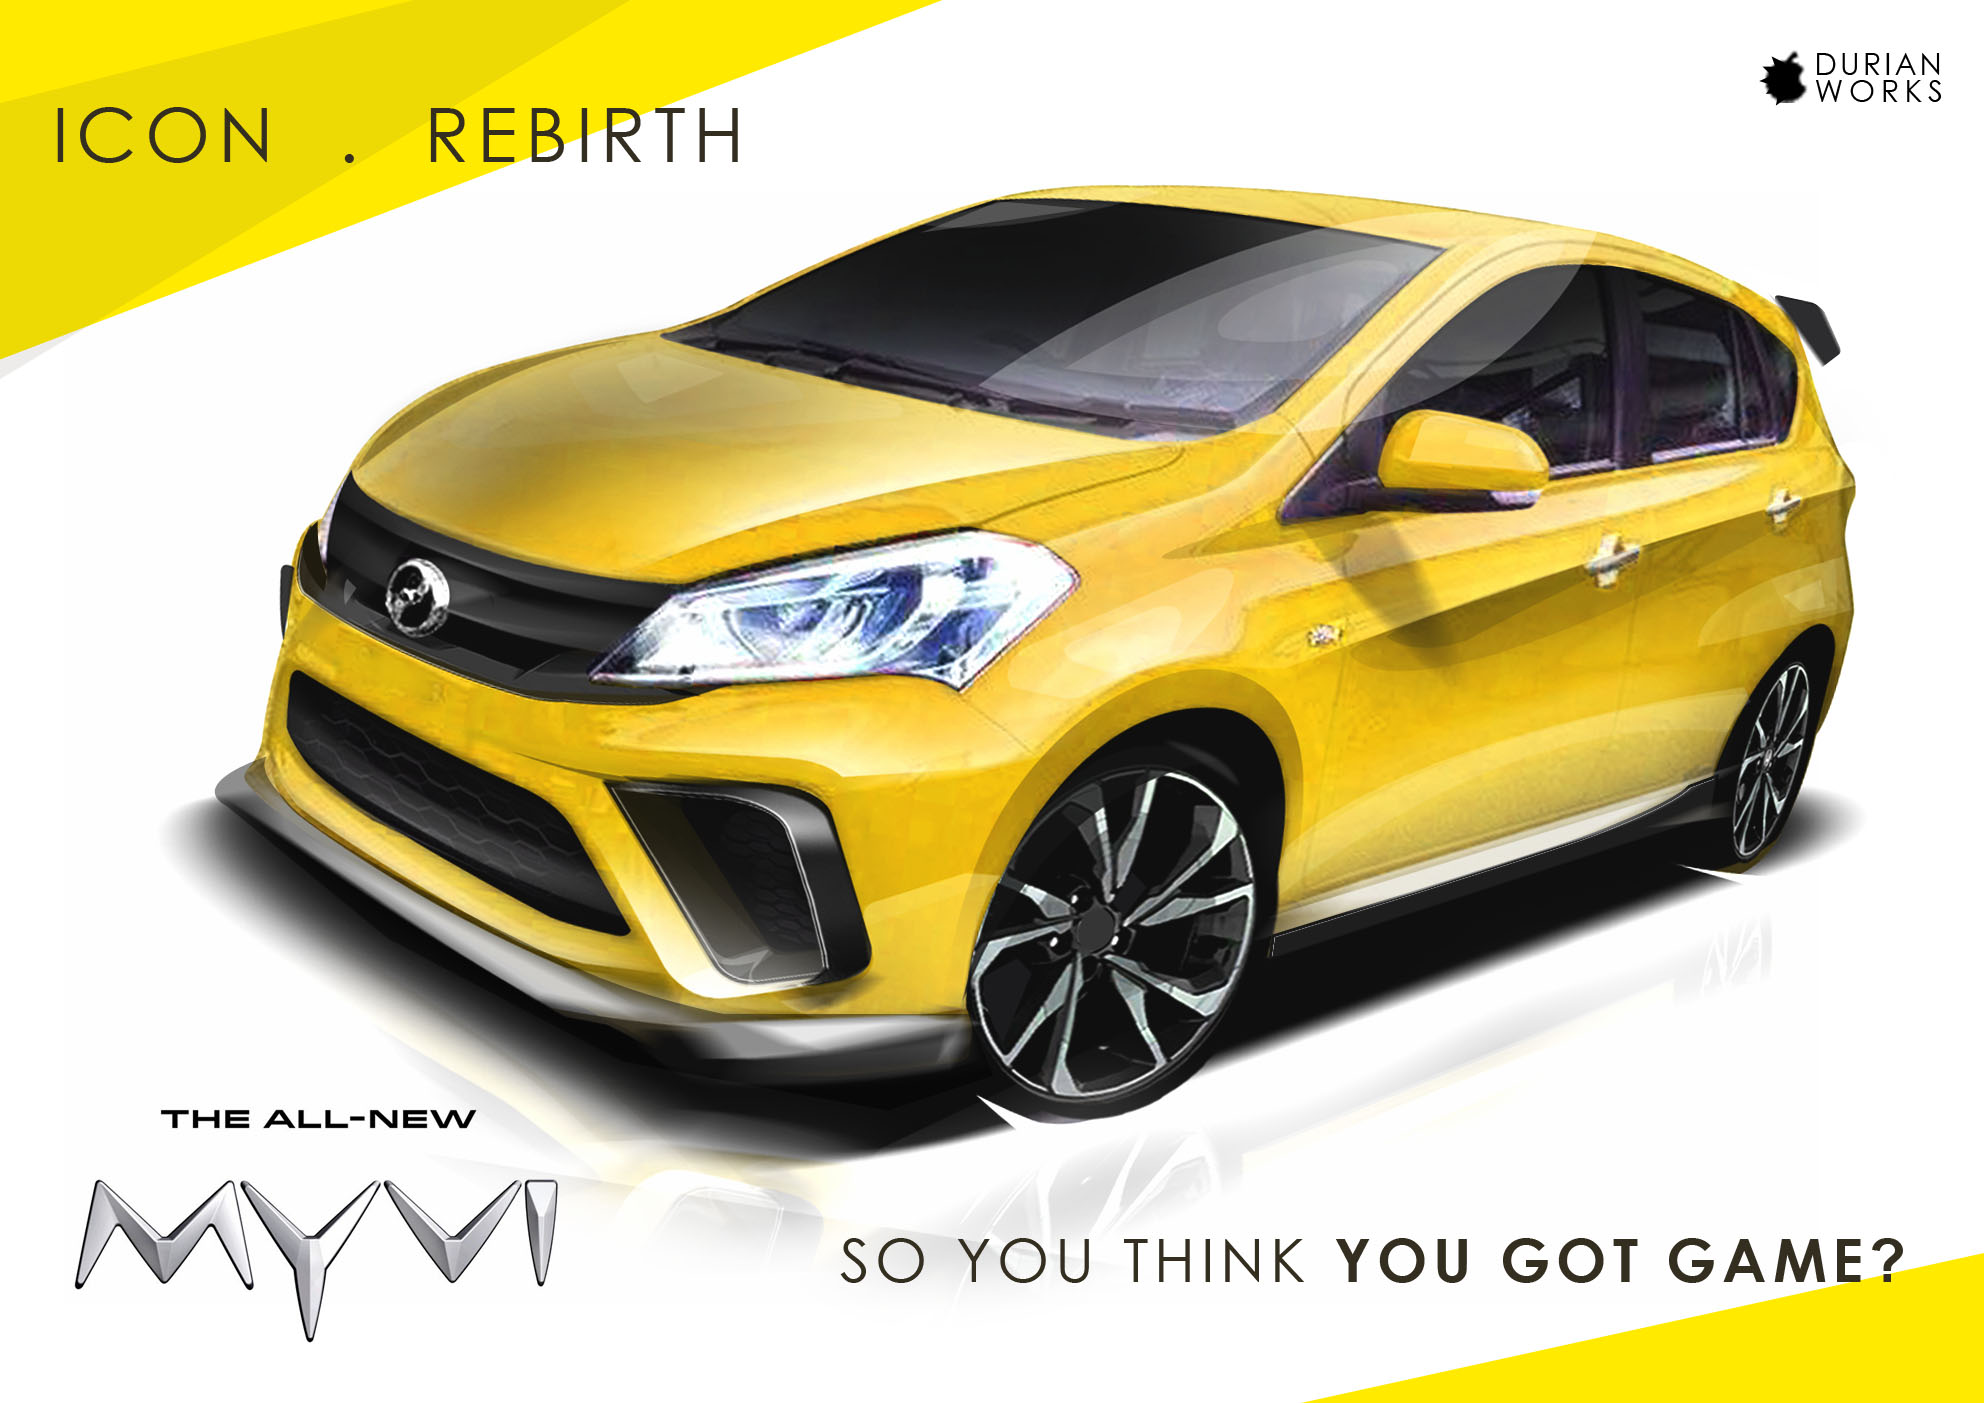 2018 Perodua Myvi virtually tuned by Durian Works